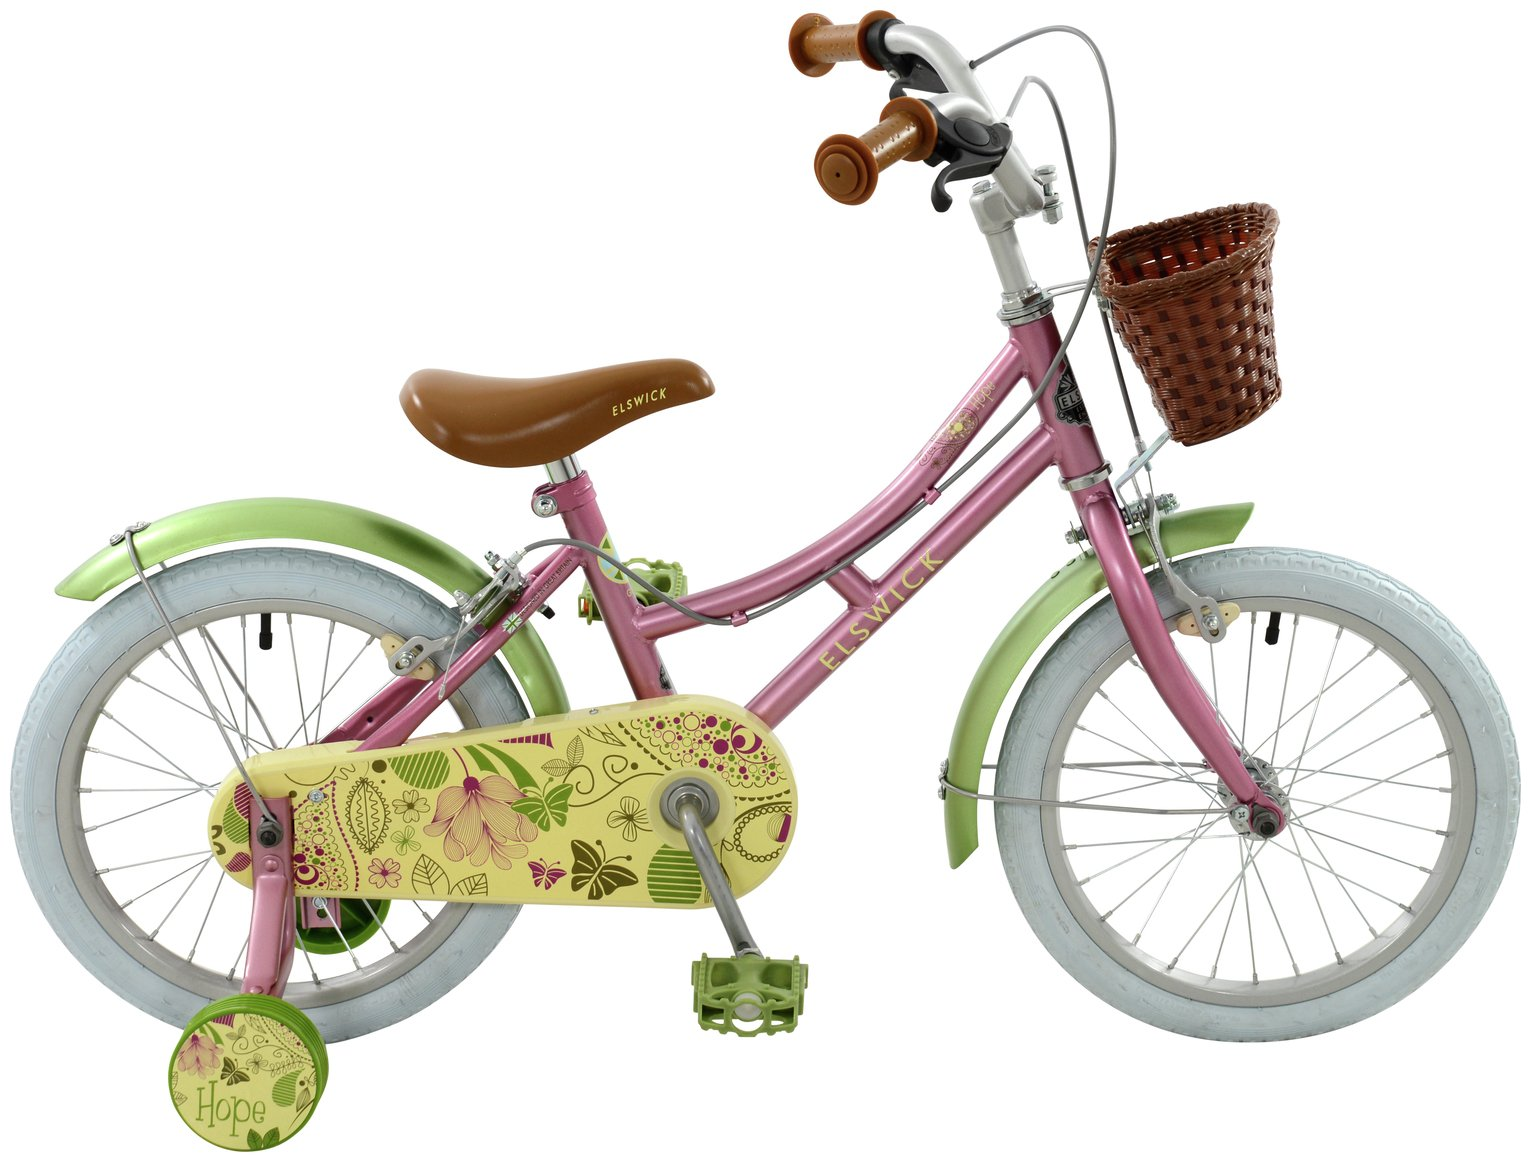 Image of Elswick Hope Kid's 16 Inch Heritage Bike